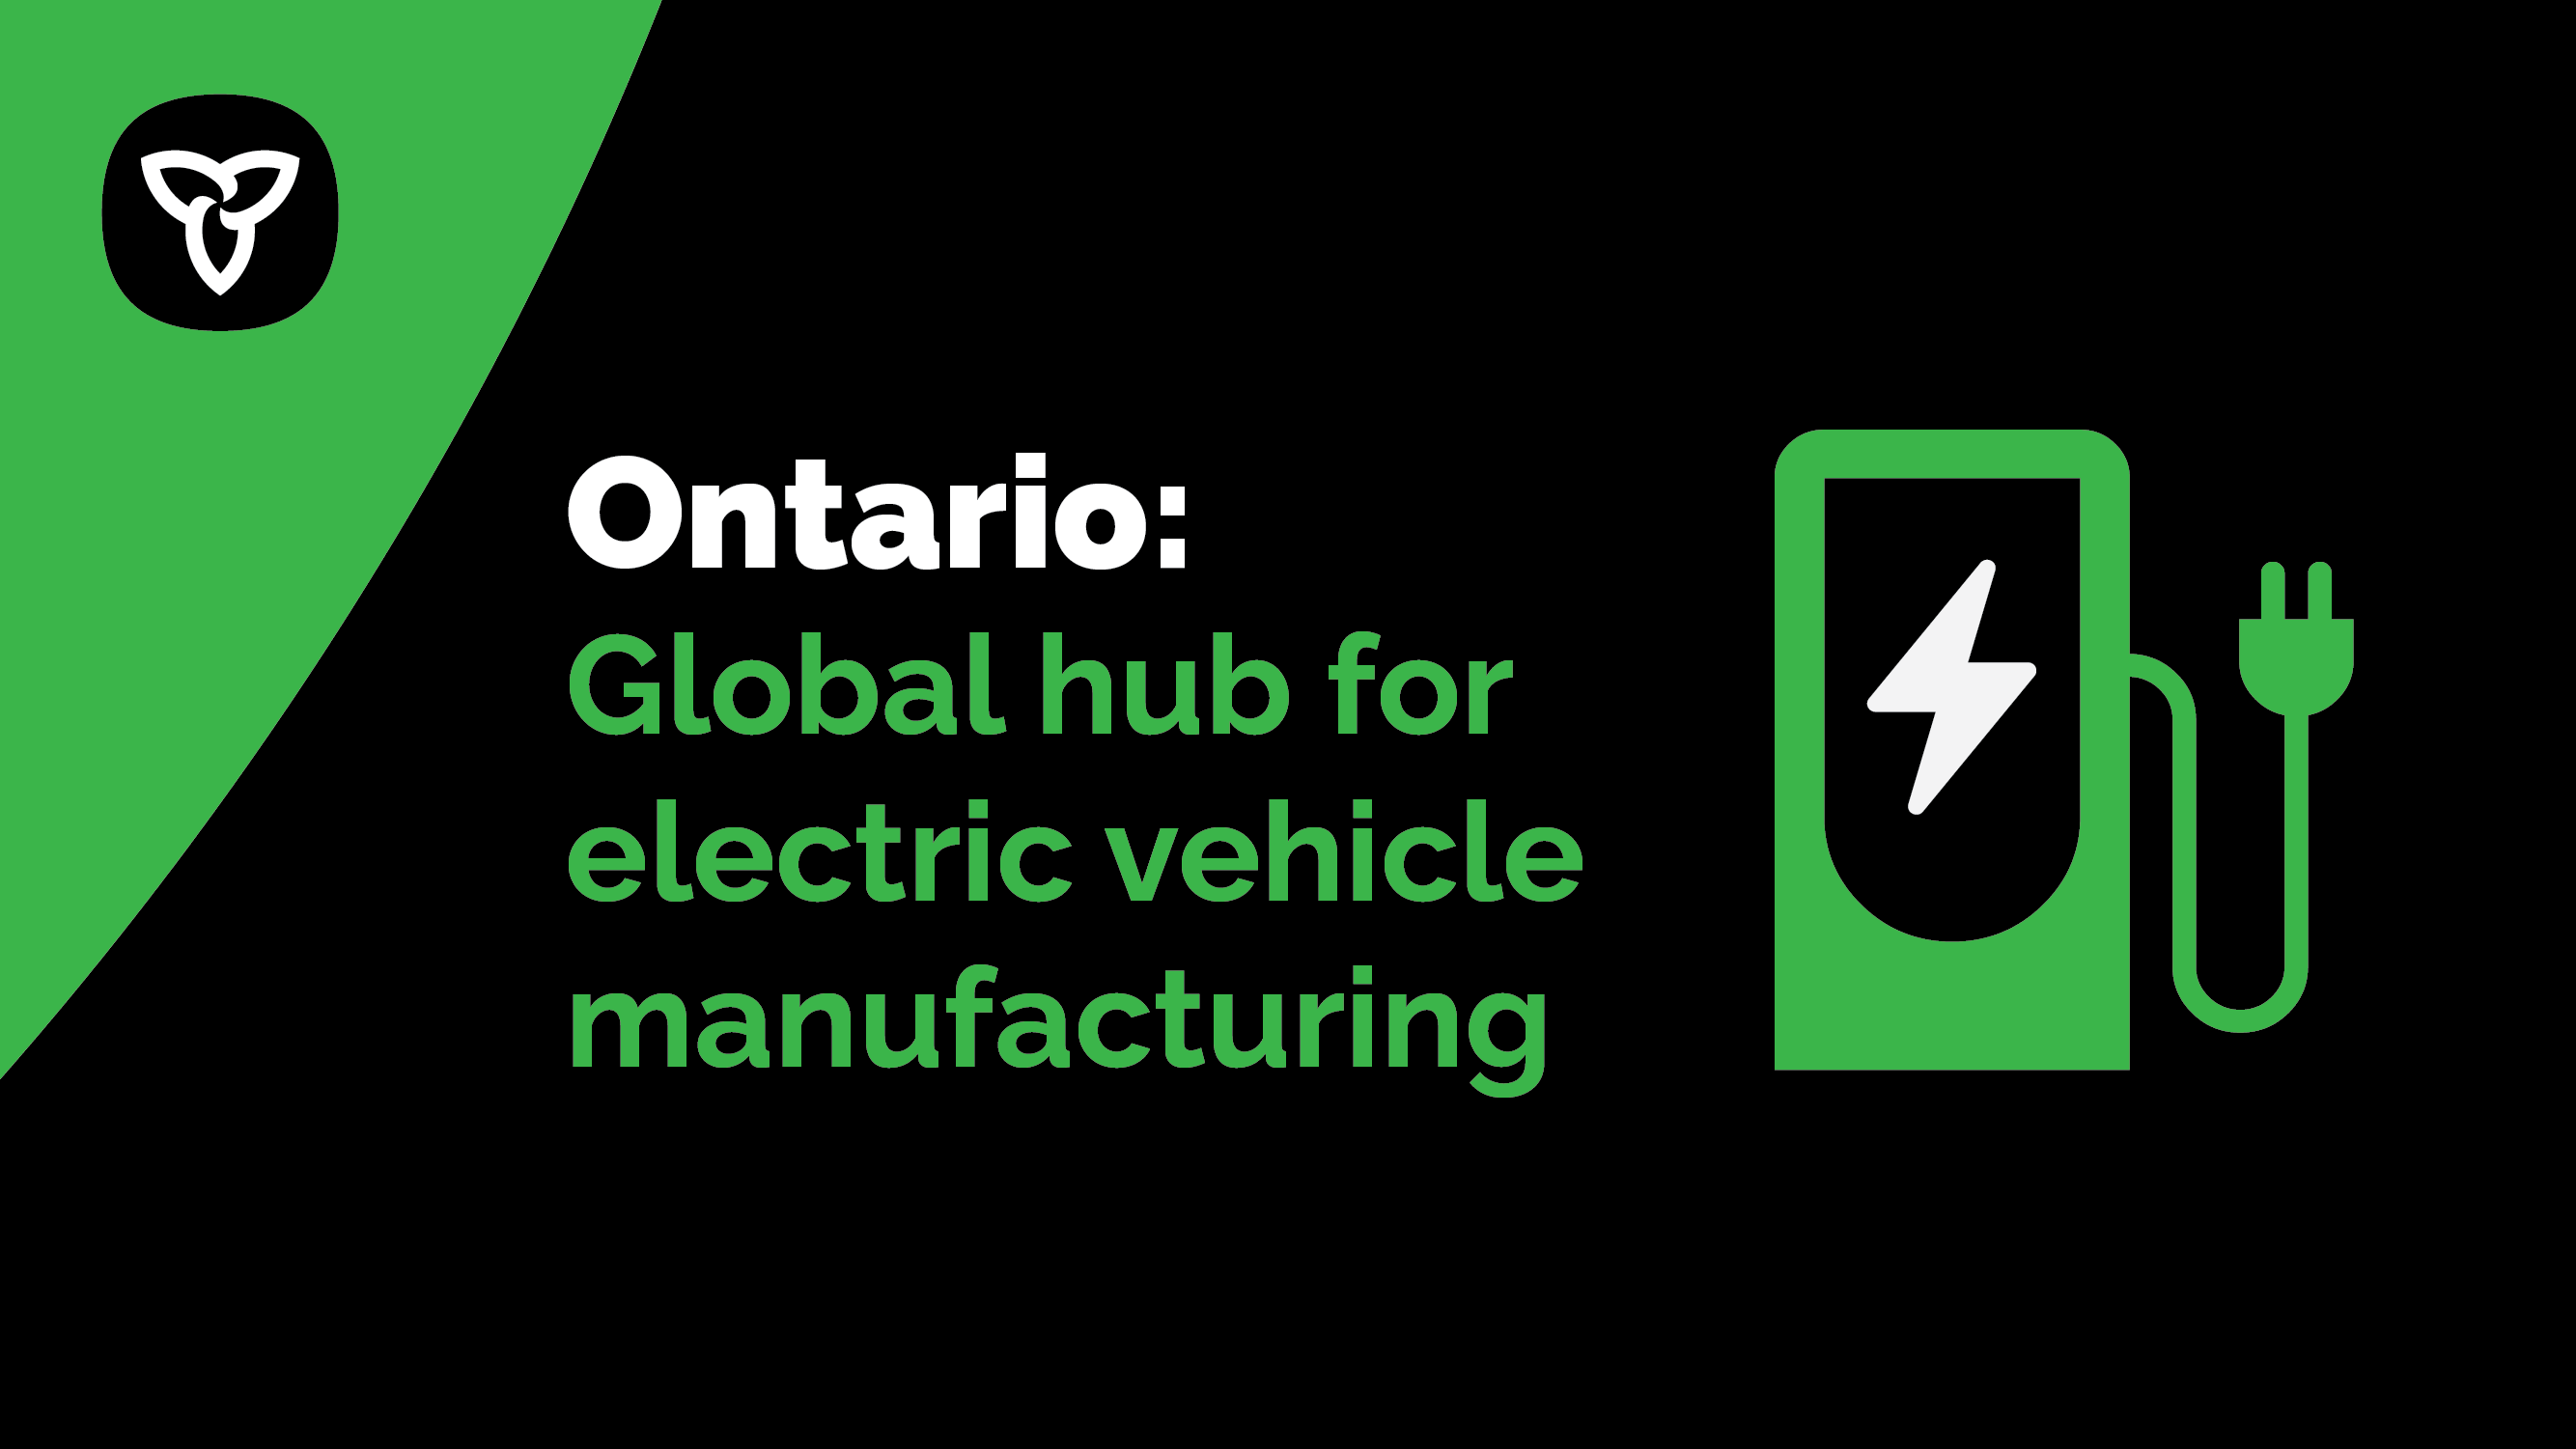 Historic Ford Canada Investment Transforming Ontario into Global Electric Vehicle Manufacturing Hub